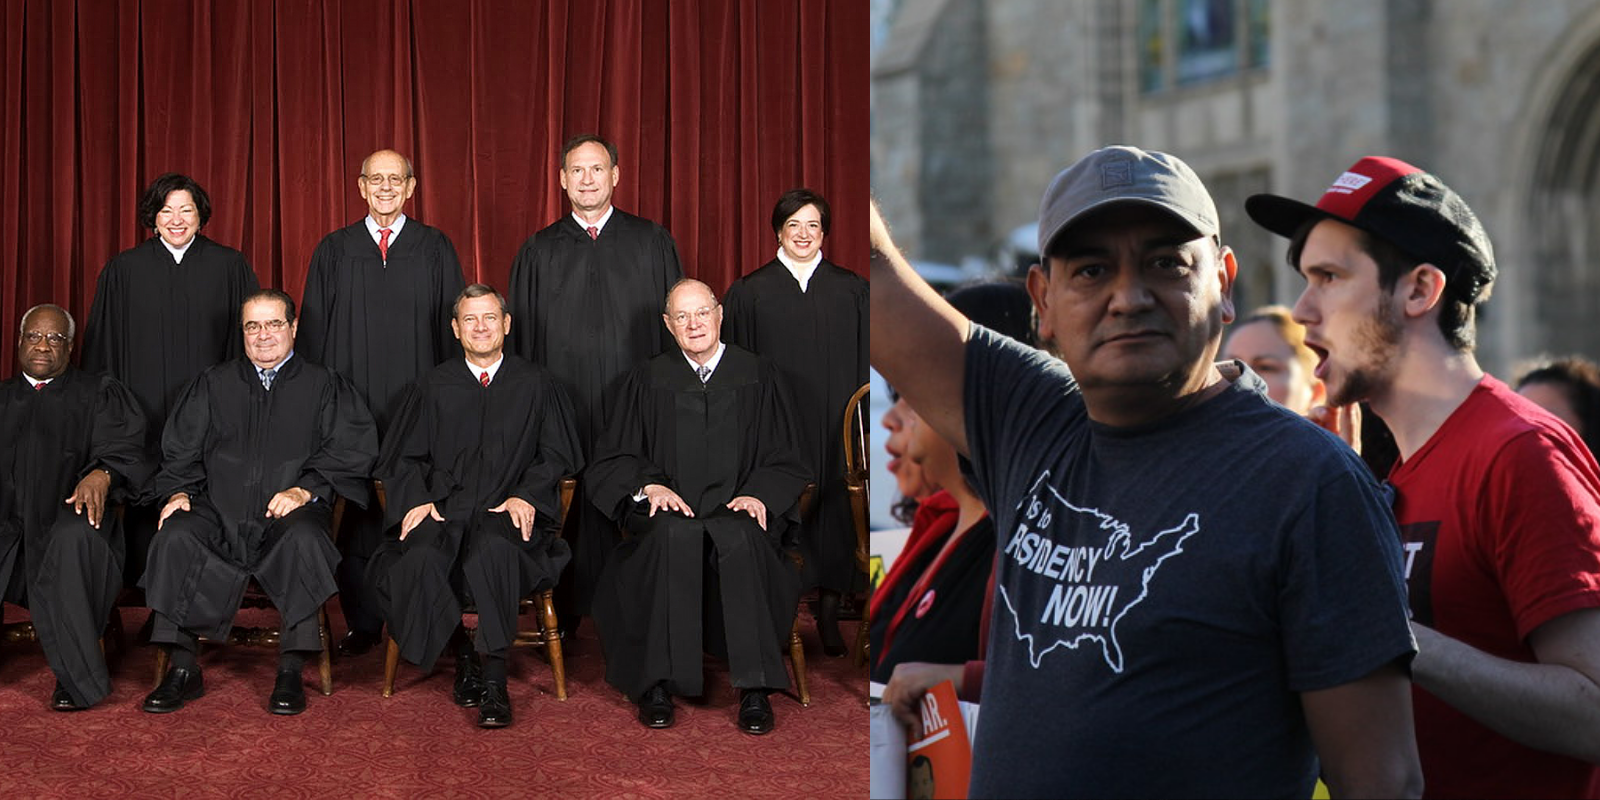 SCOTUS votes unanimously against giving automatic residence to illegal immigrants